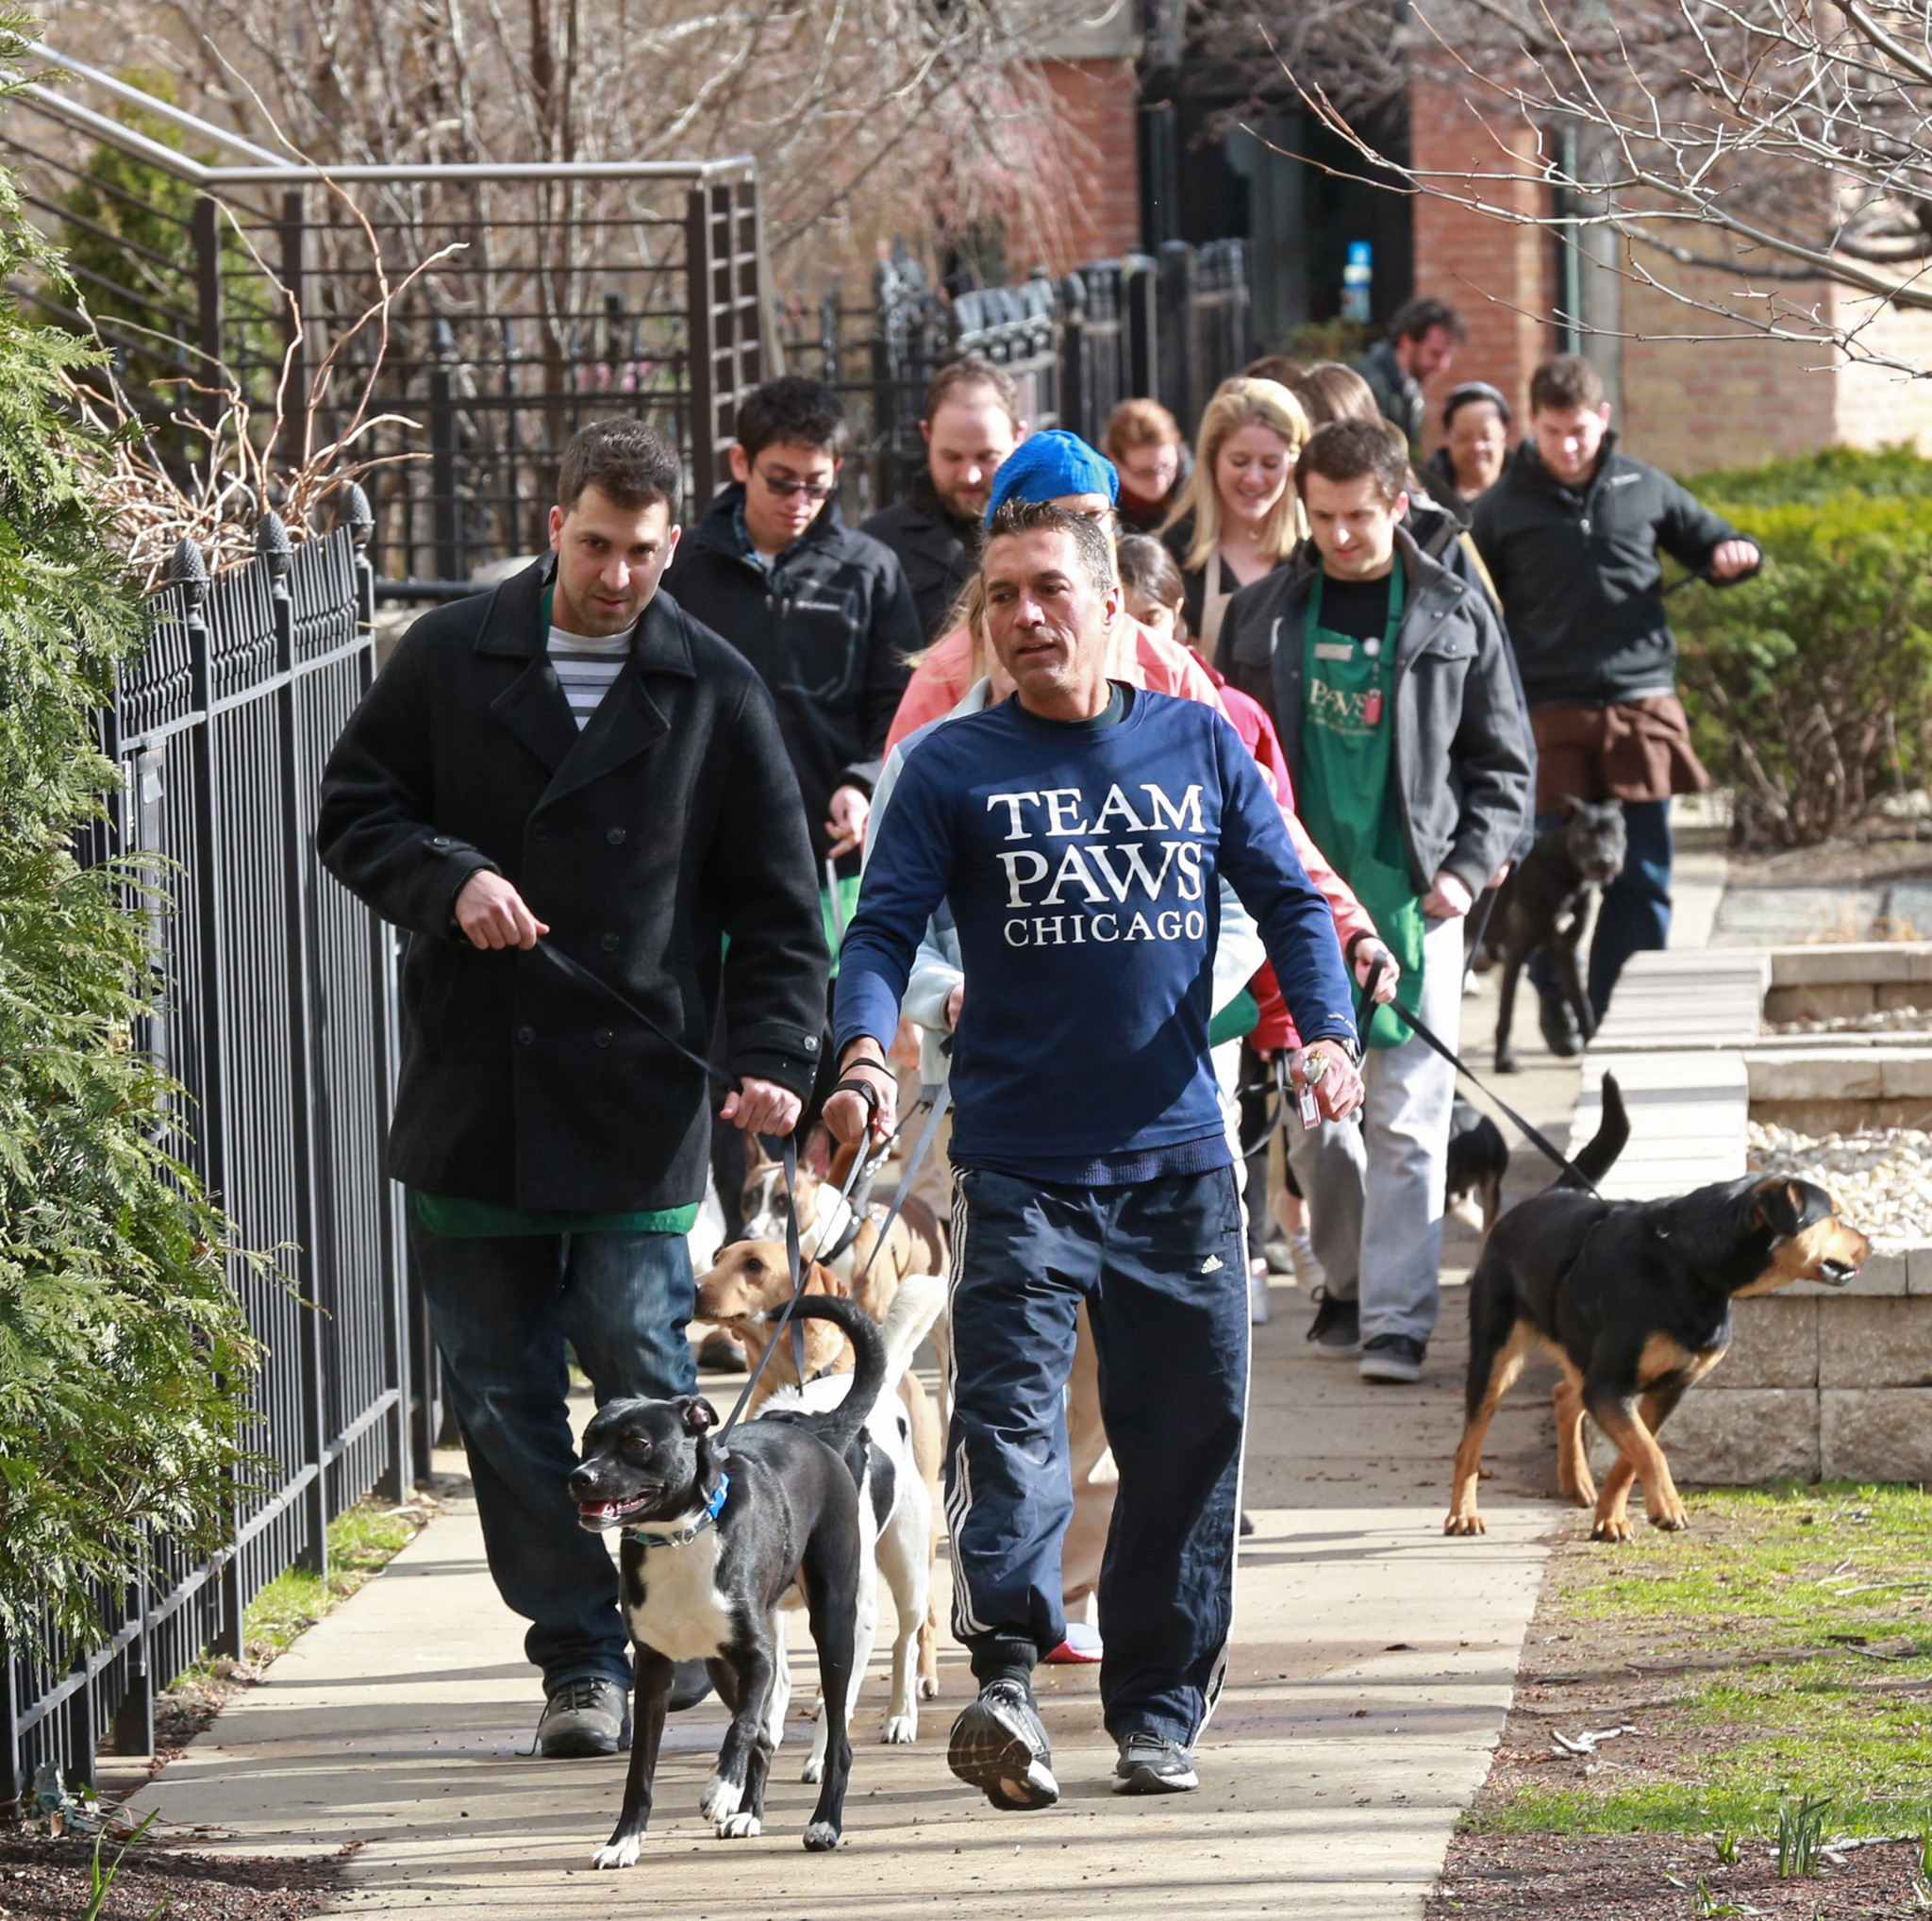 Too costly for Chicago to turn city-run shelter into no-kill zone?